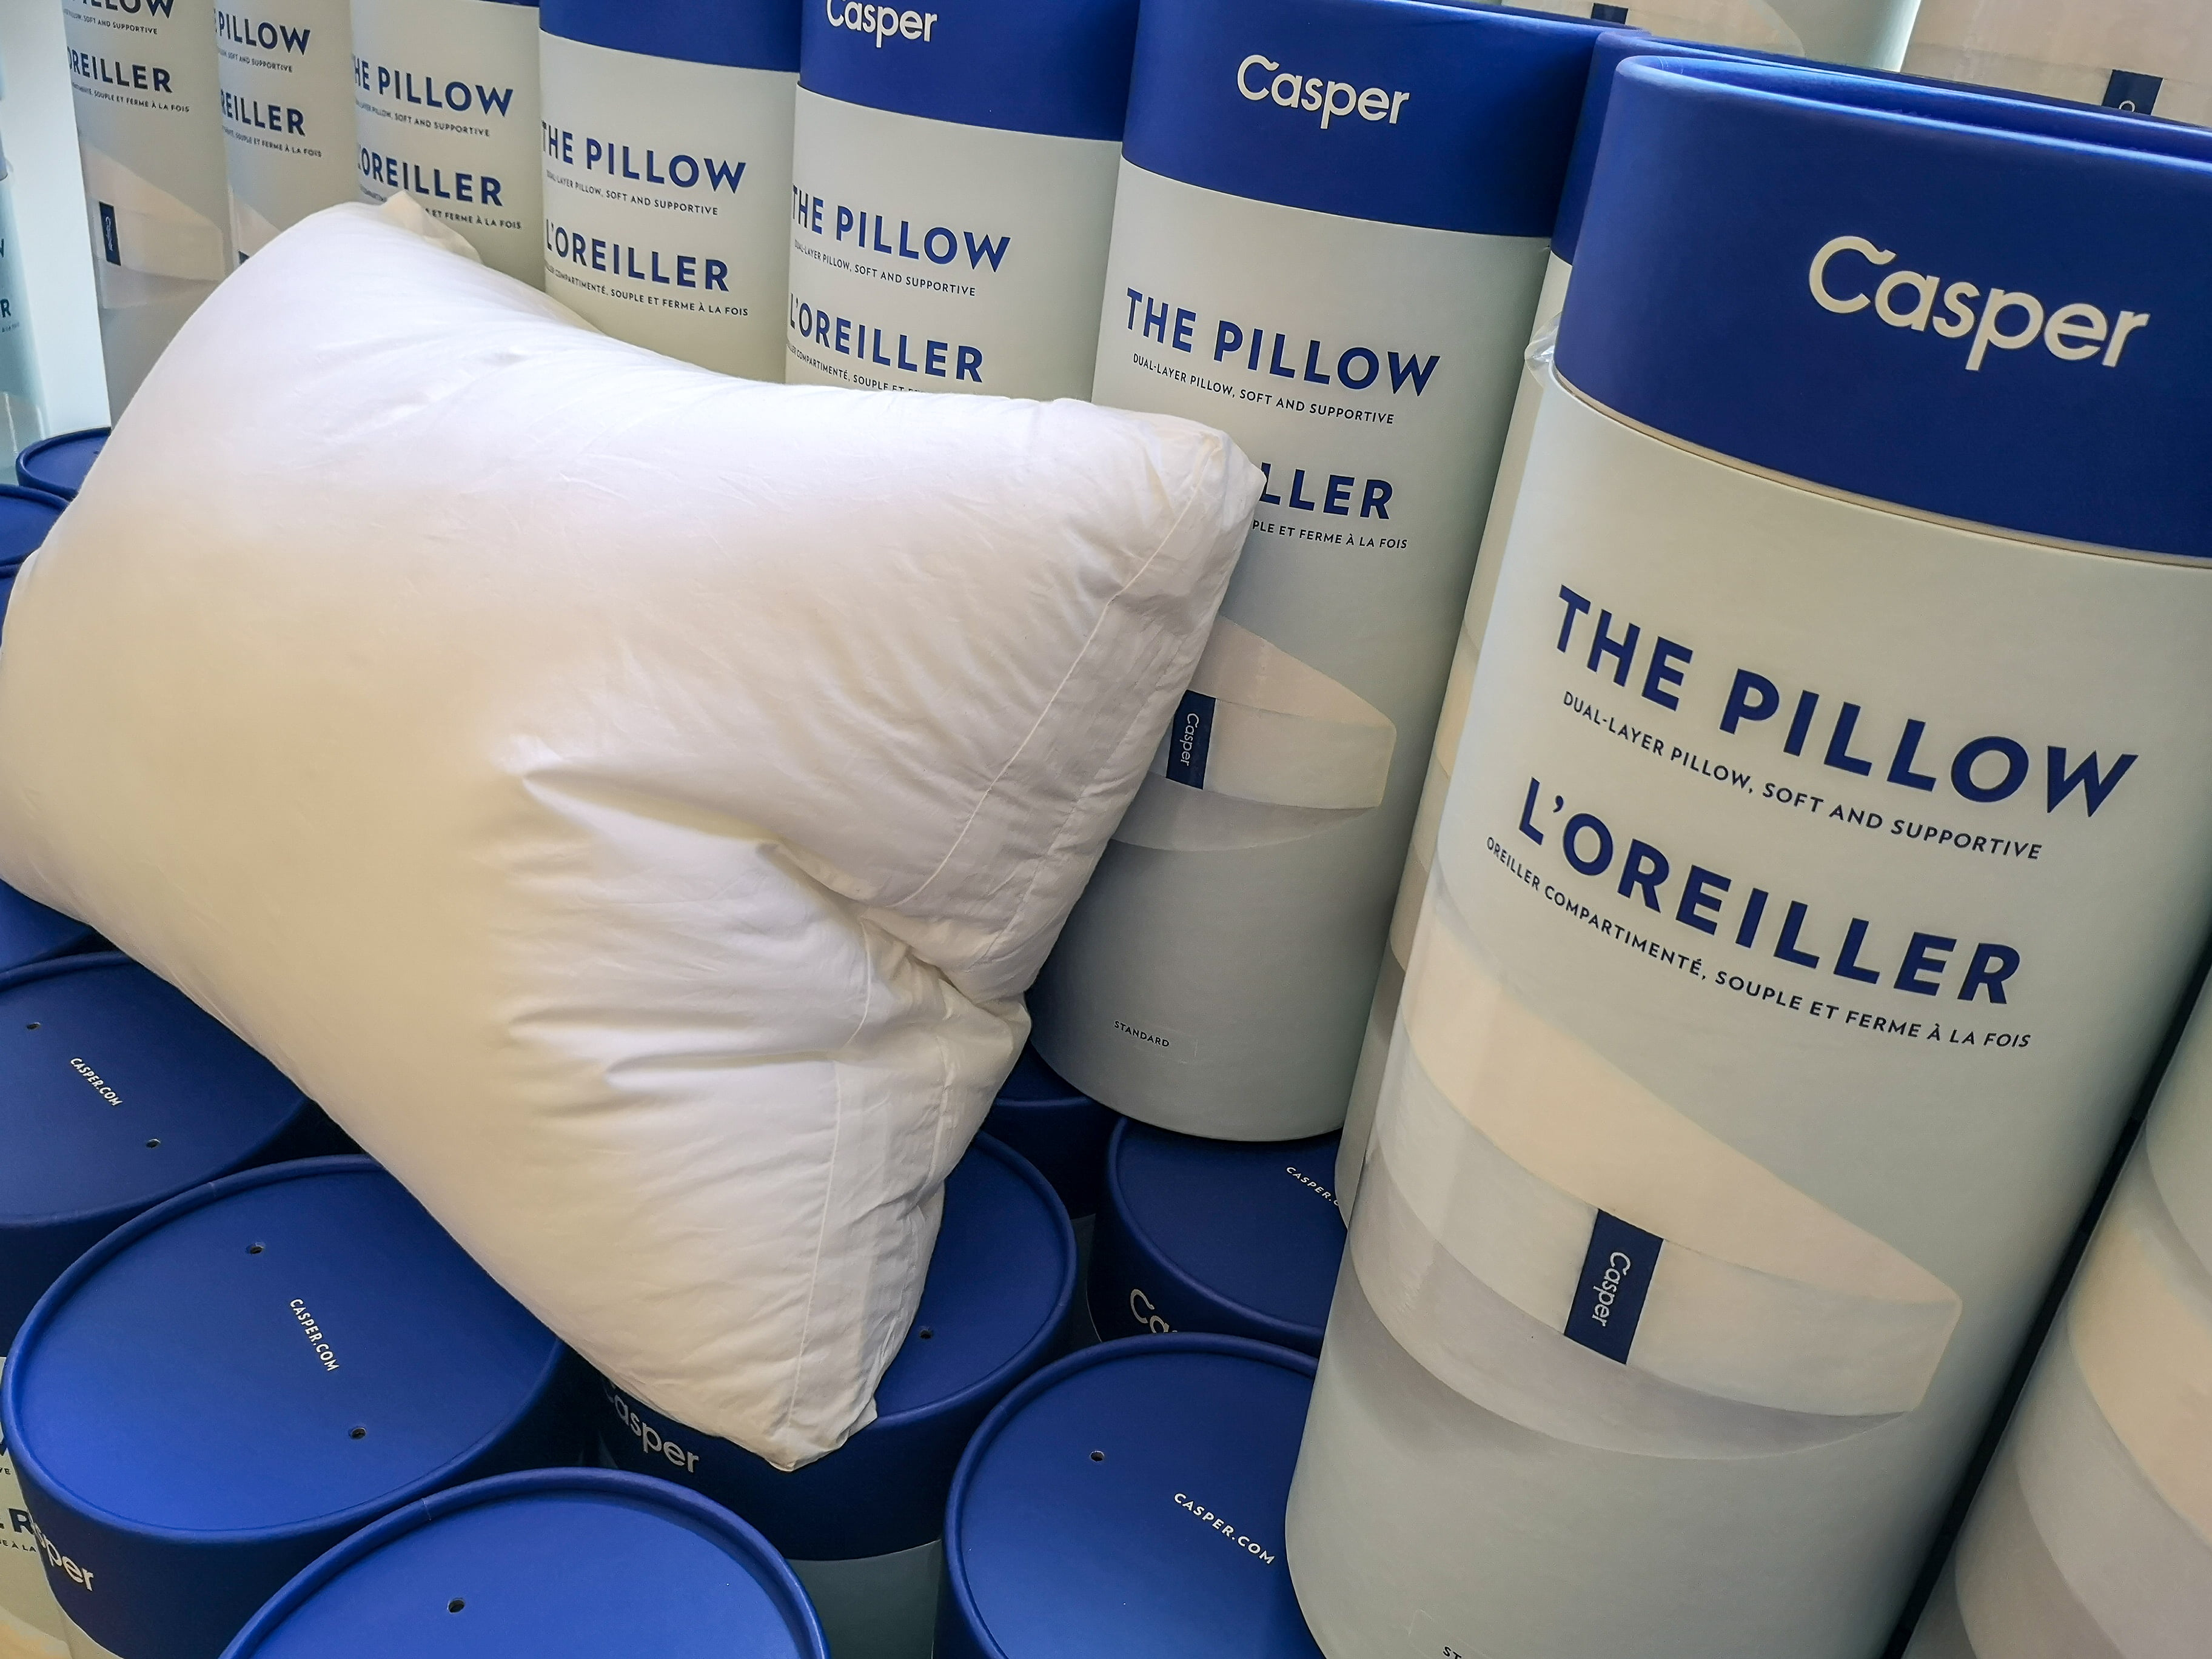 Lots, and lots of pillows